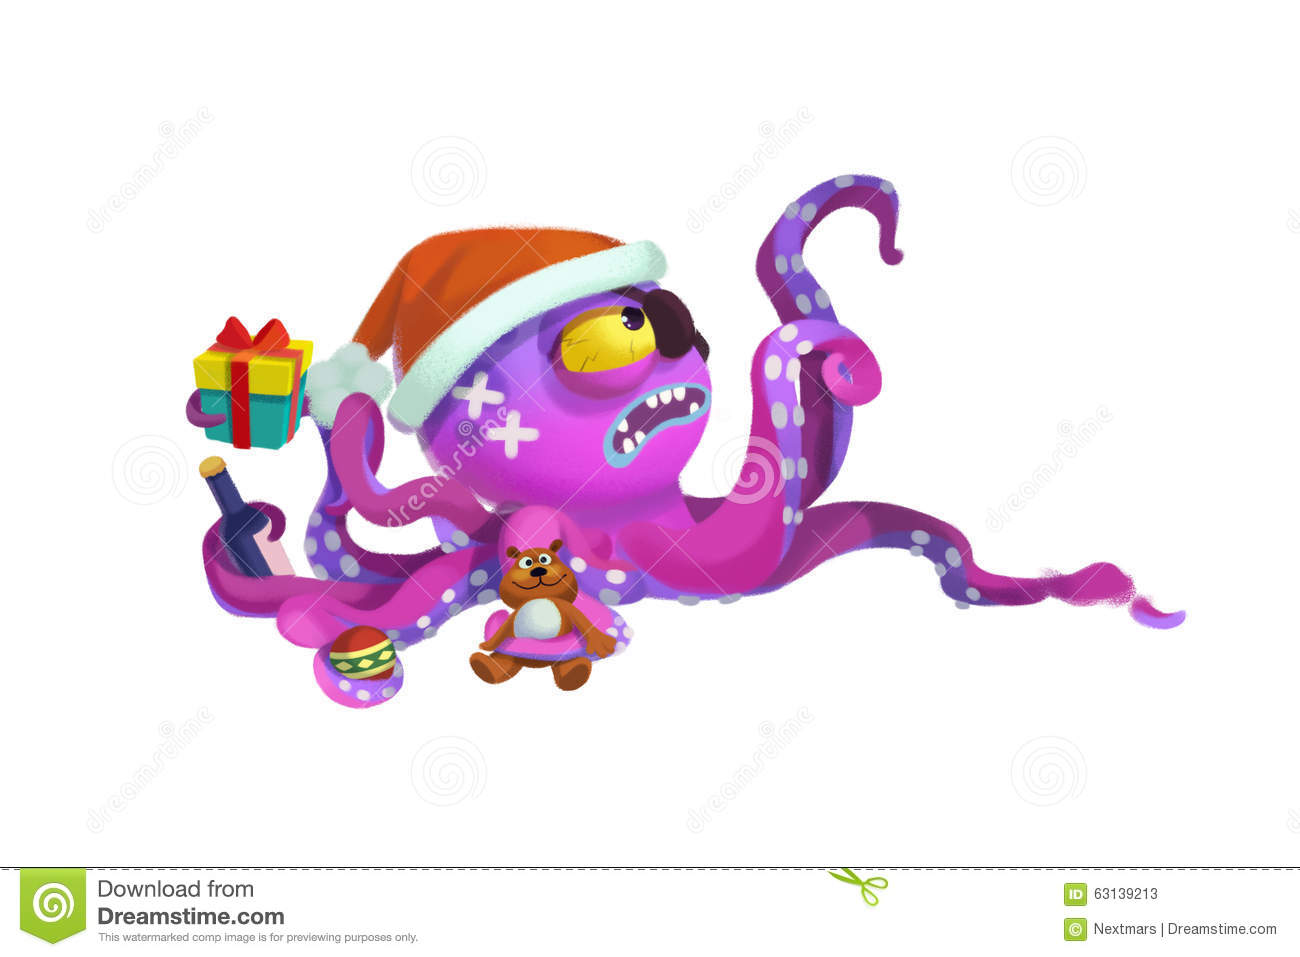 Illustration The Octopus Monster Comes To Wish You Merry